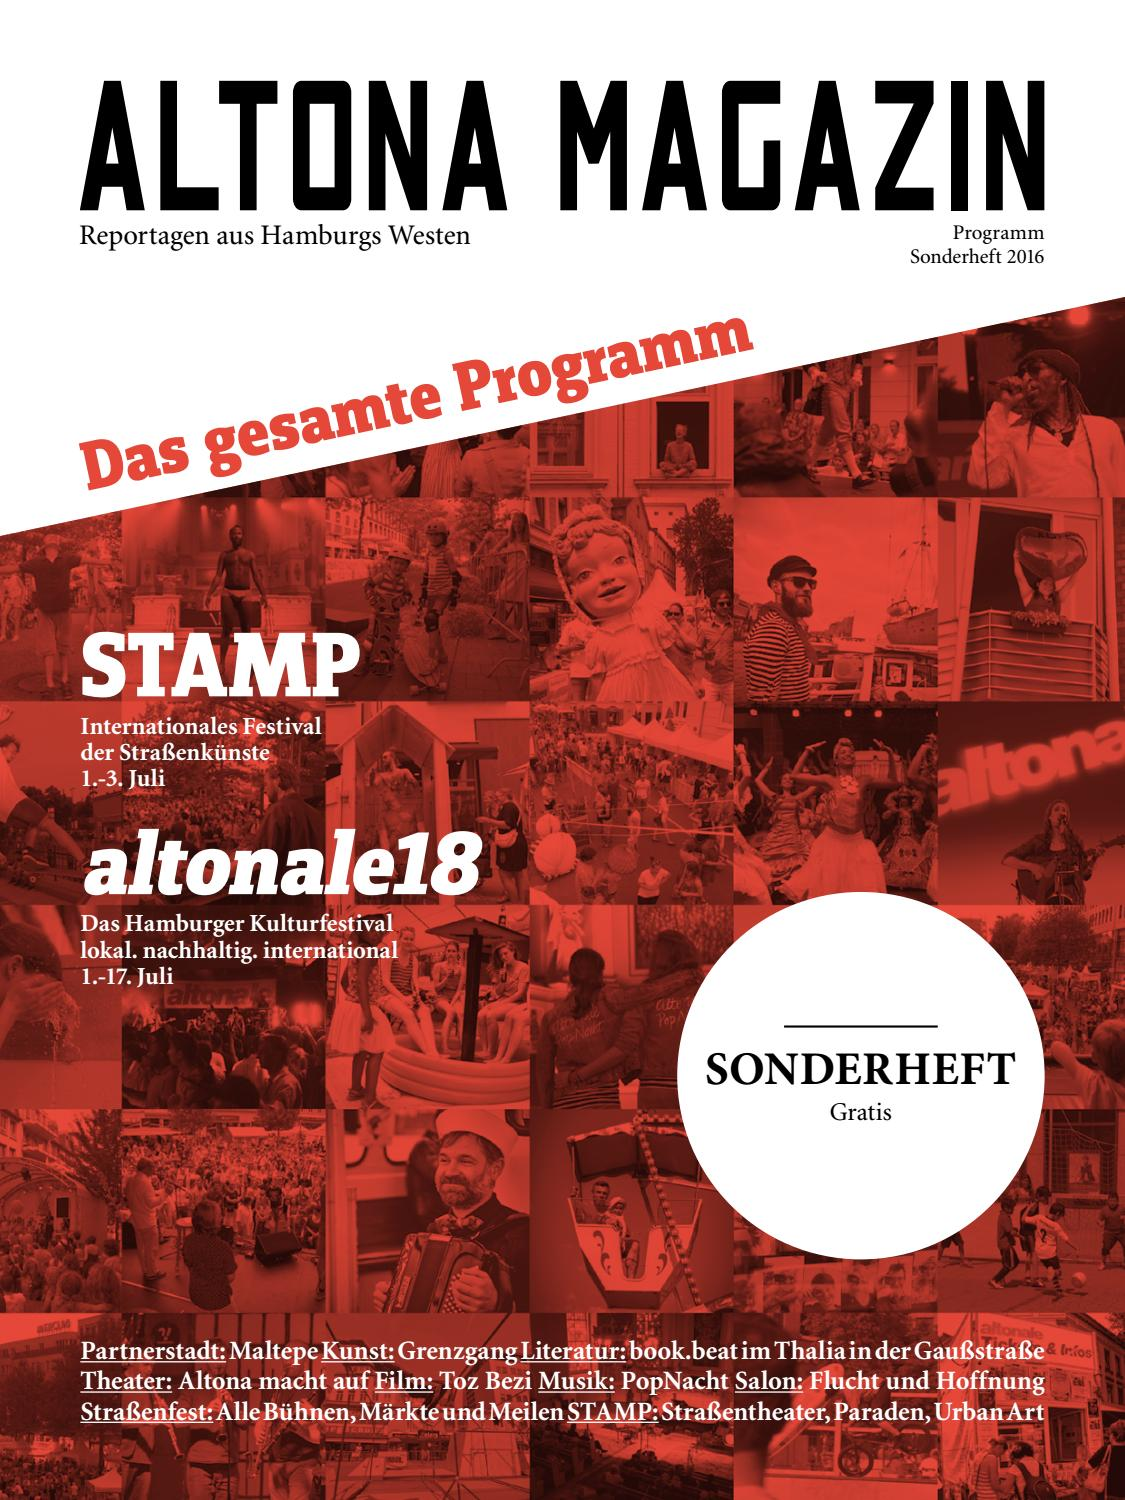 Altona Magazin Sonderheft Programm 2016 By Getting Up Issuu